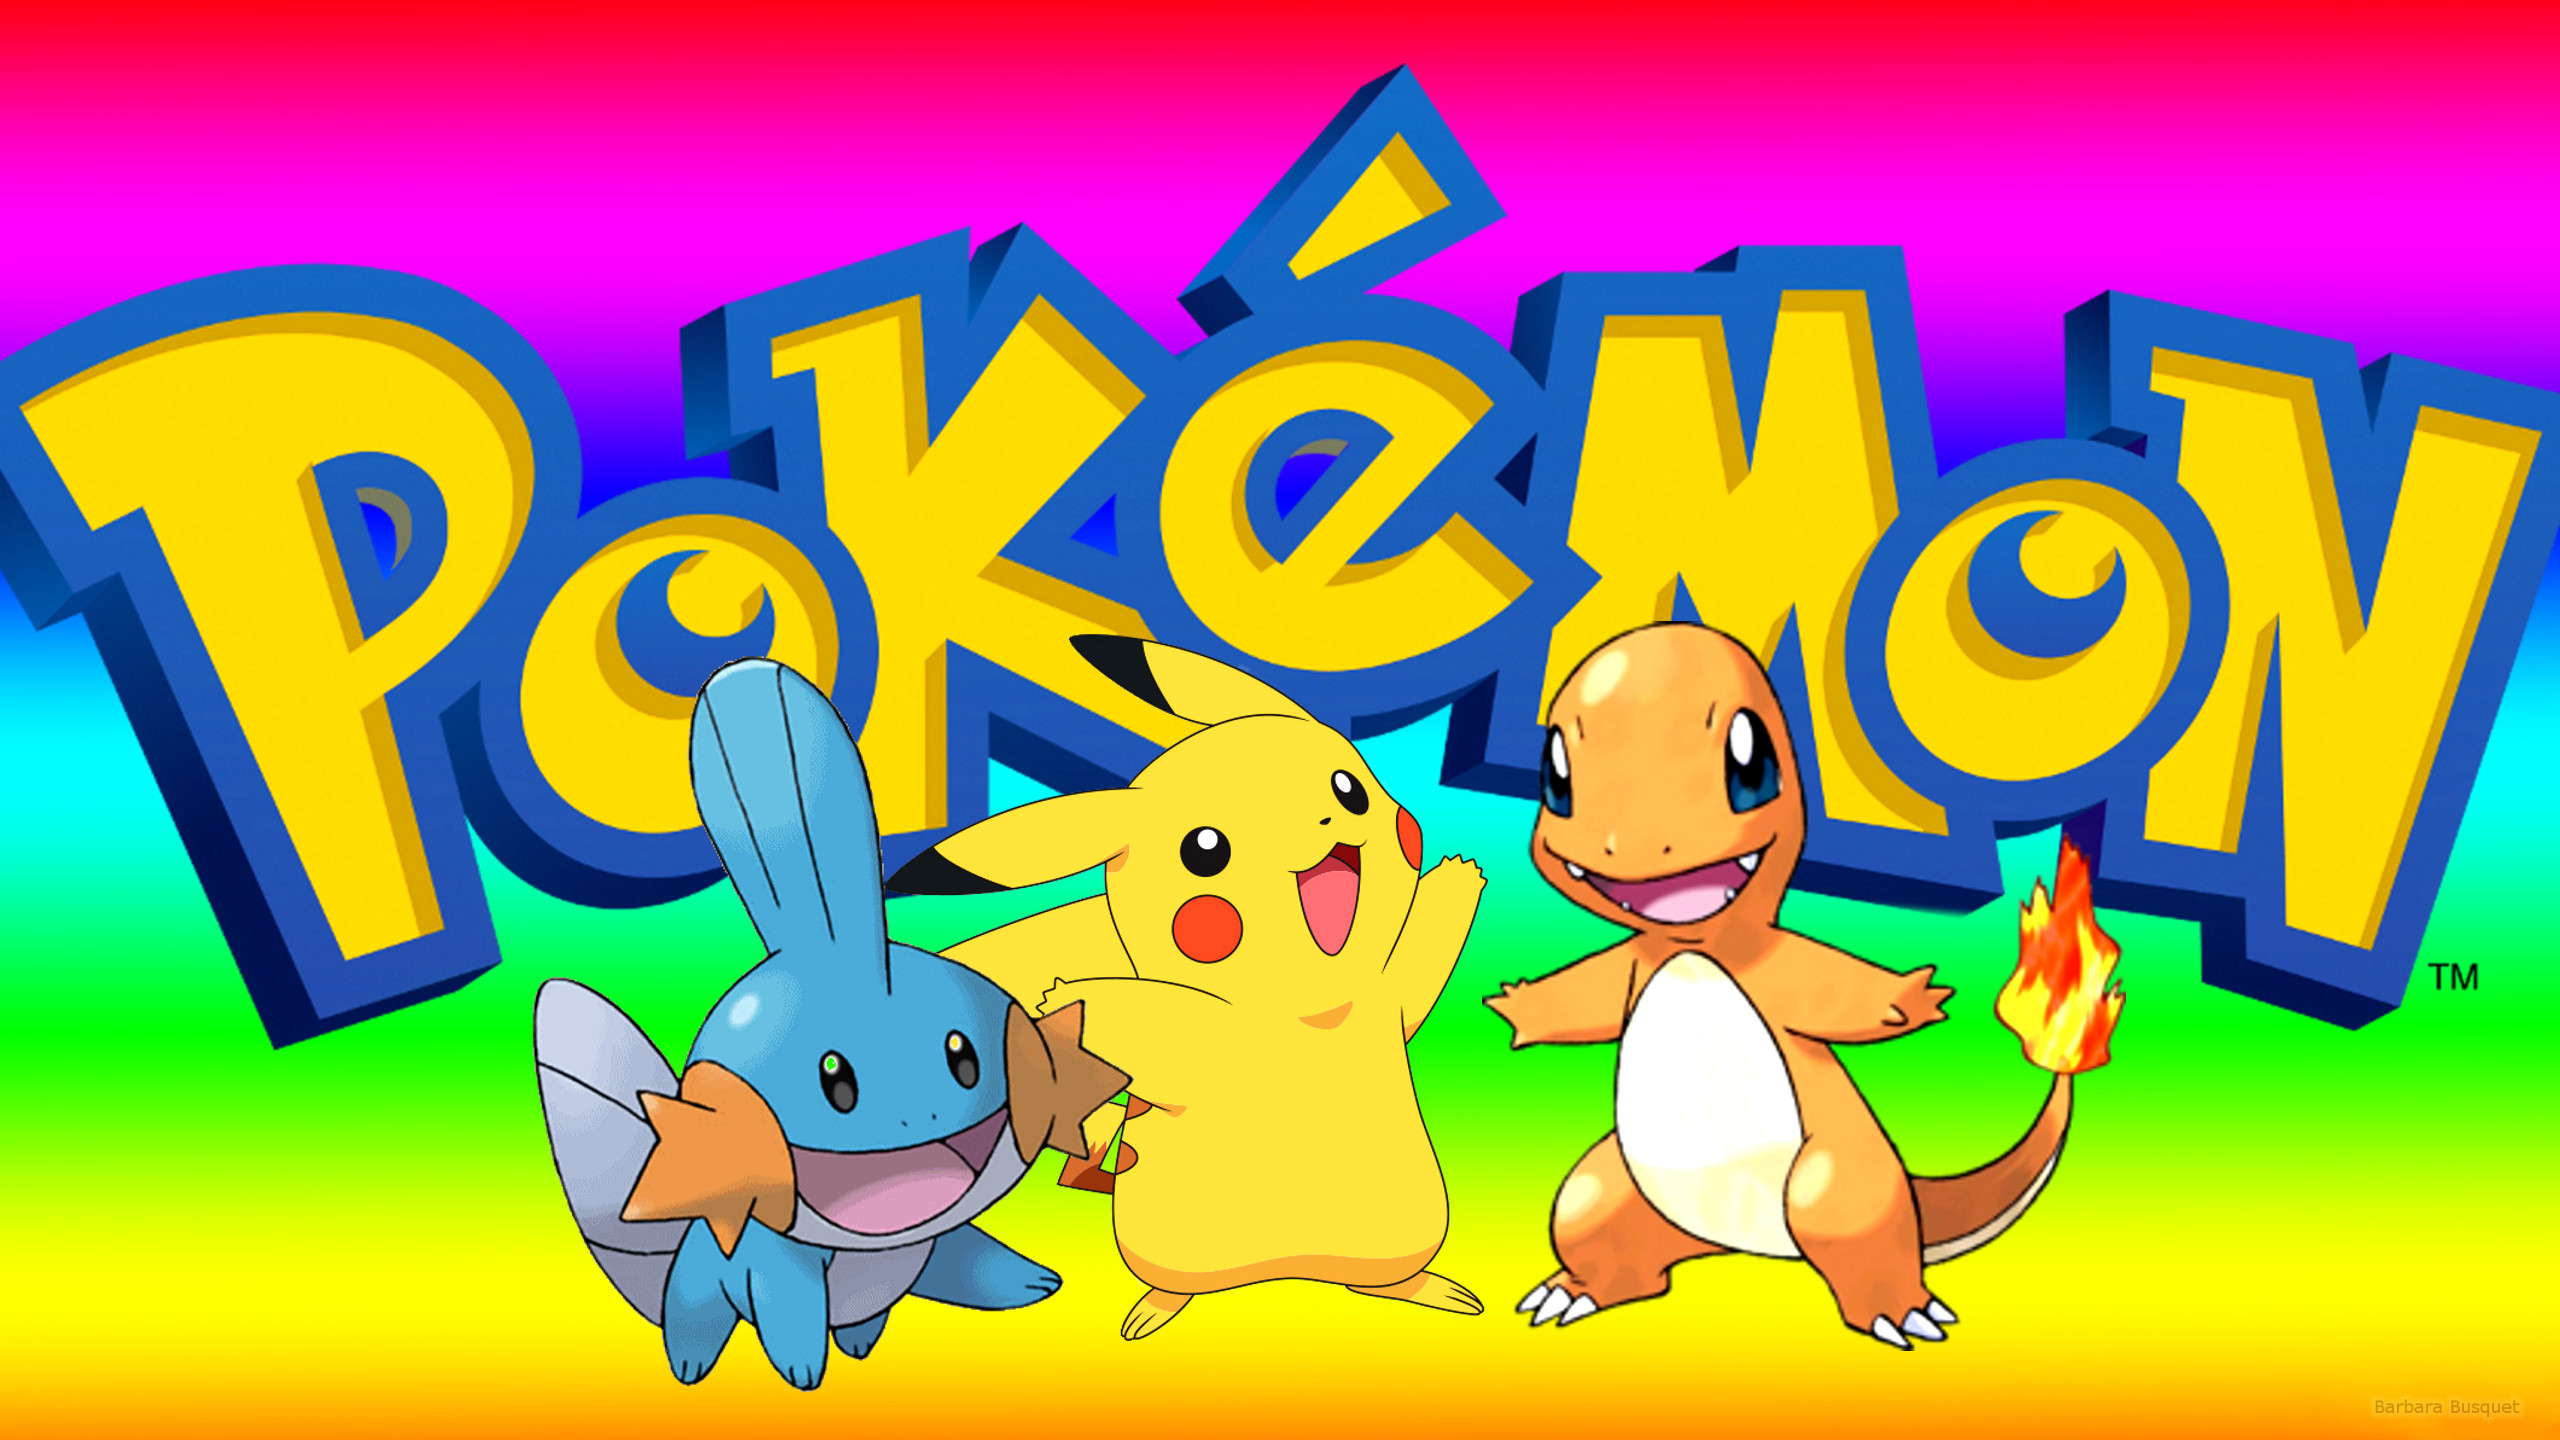 Pokemon Wallpaper With Pikachu Mudkip And Charmander